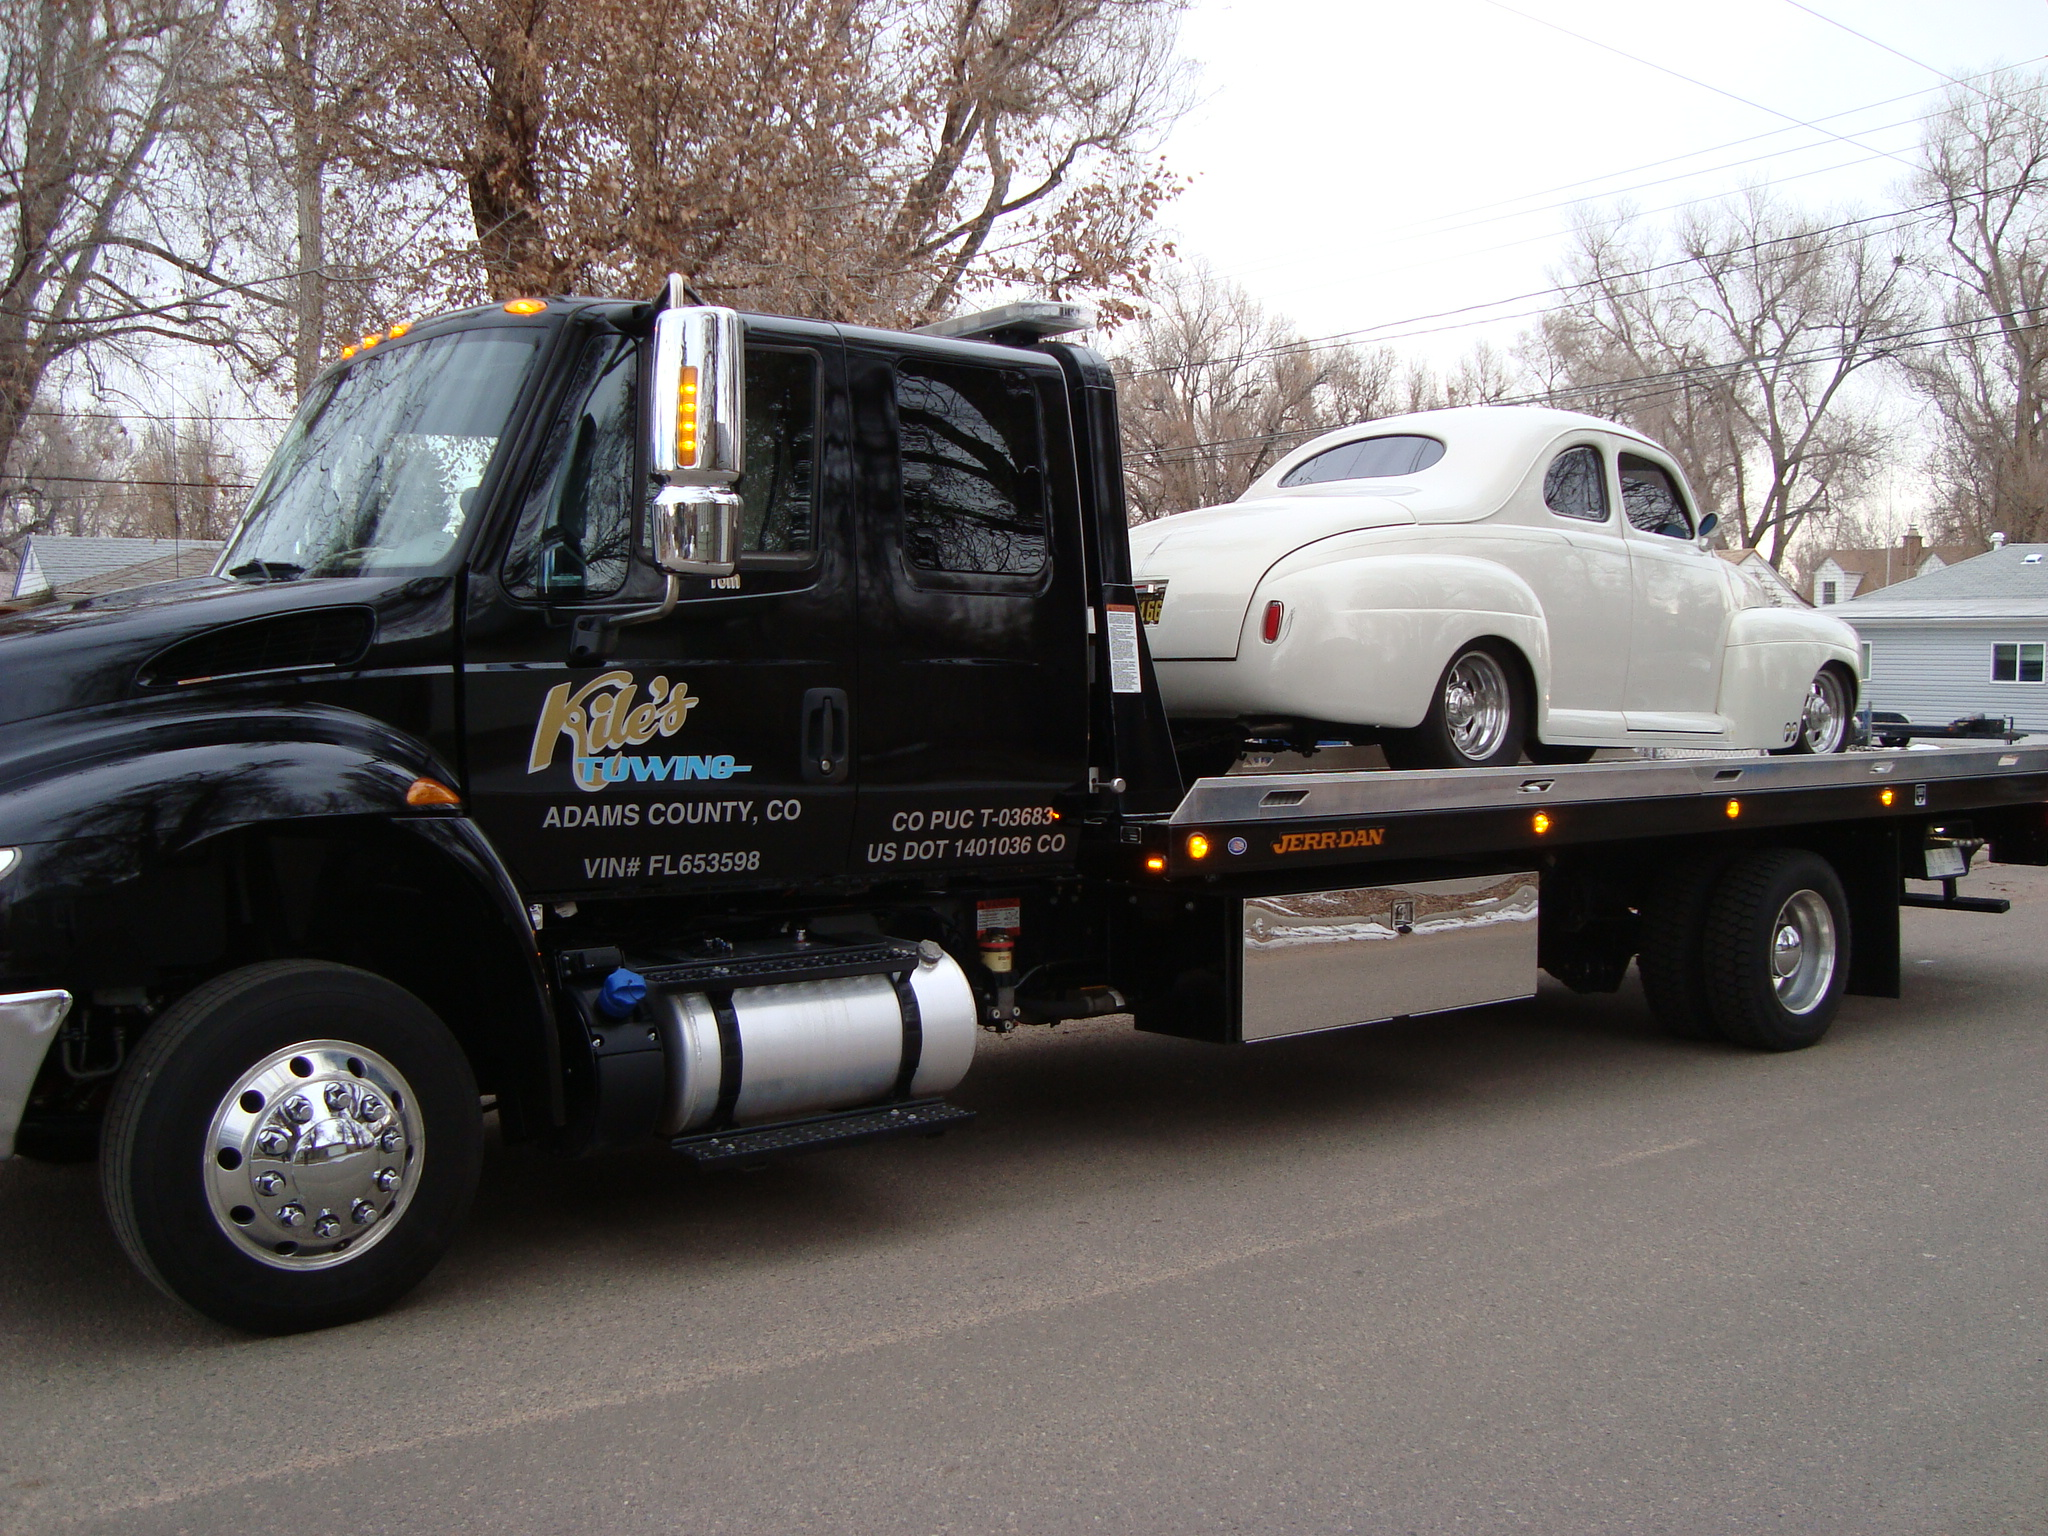 Kile's Towing image 25